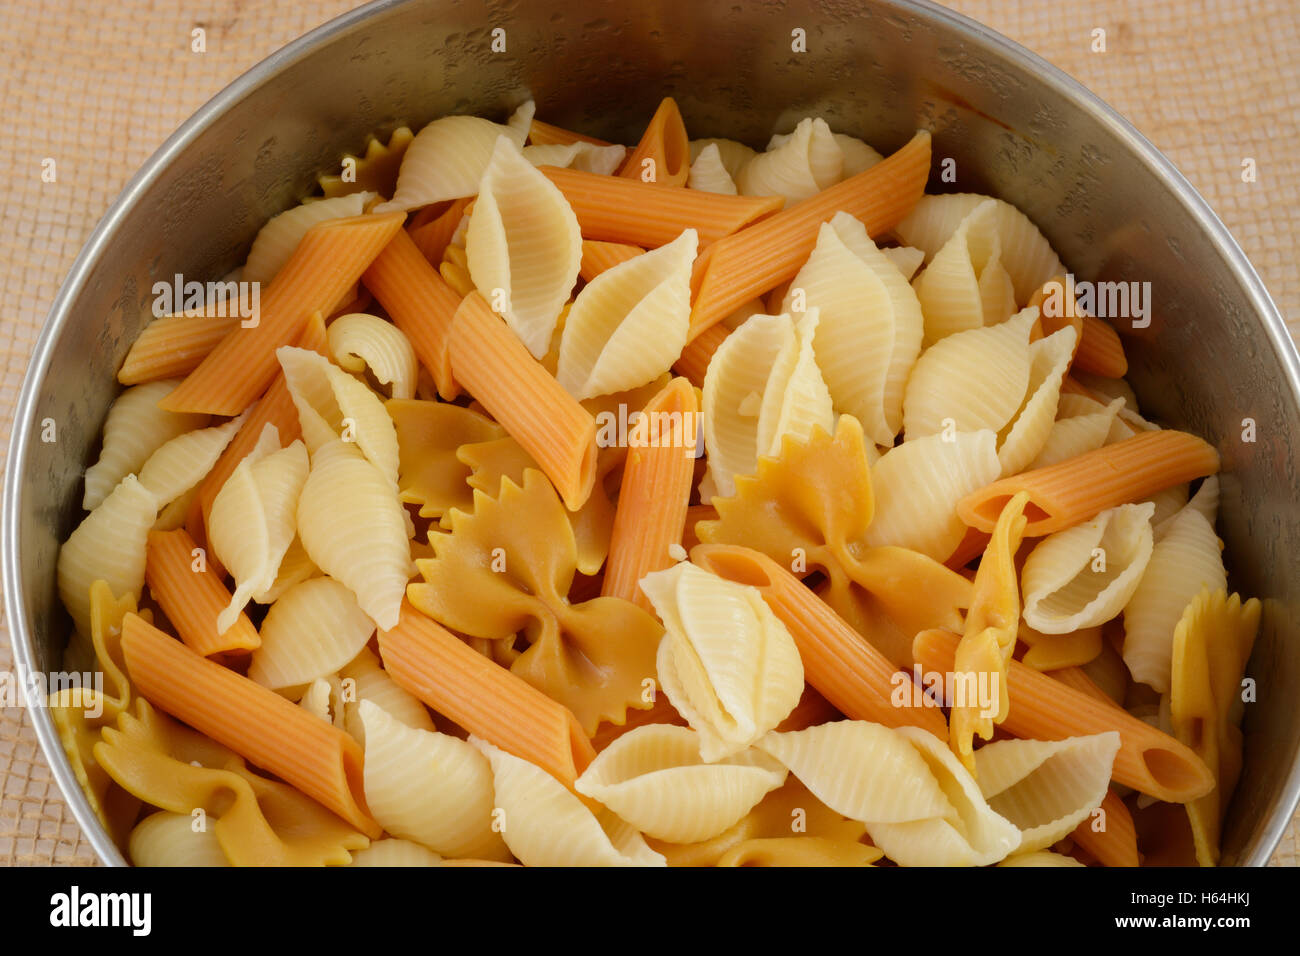 Variety of cooked pasta in stainless steel bowl - Stock Image